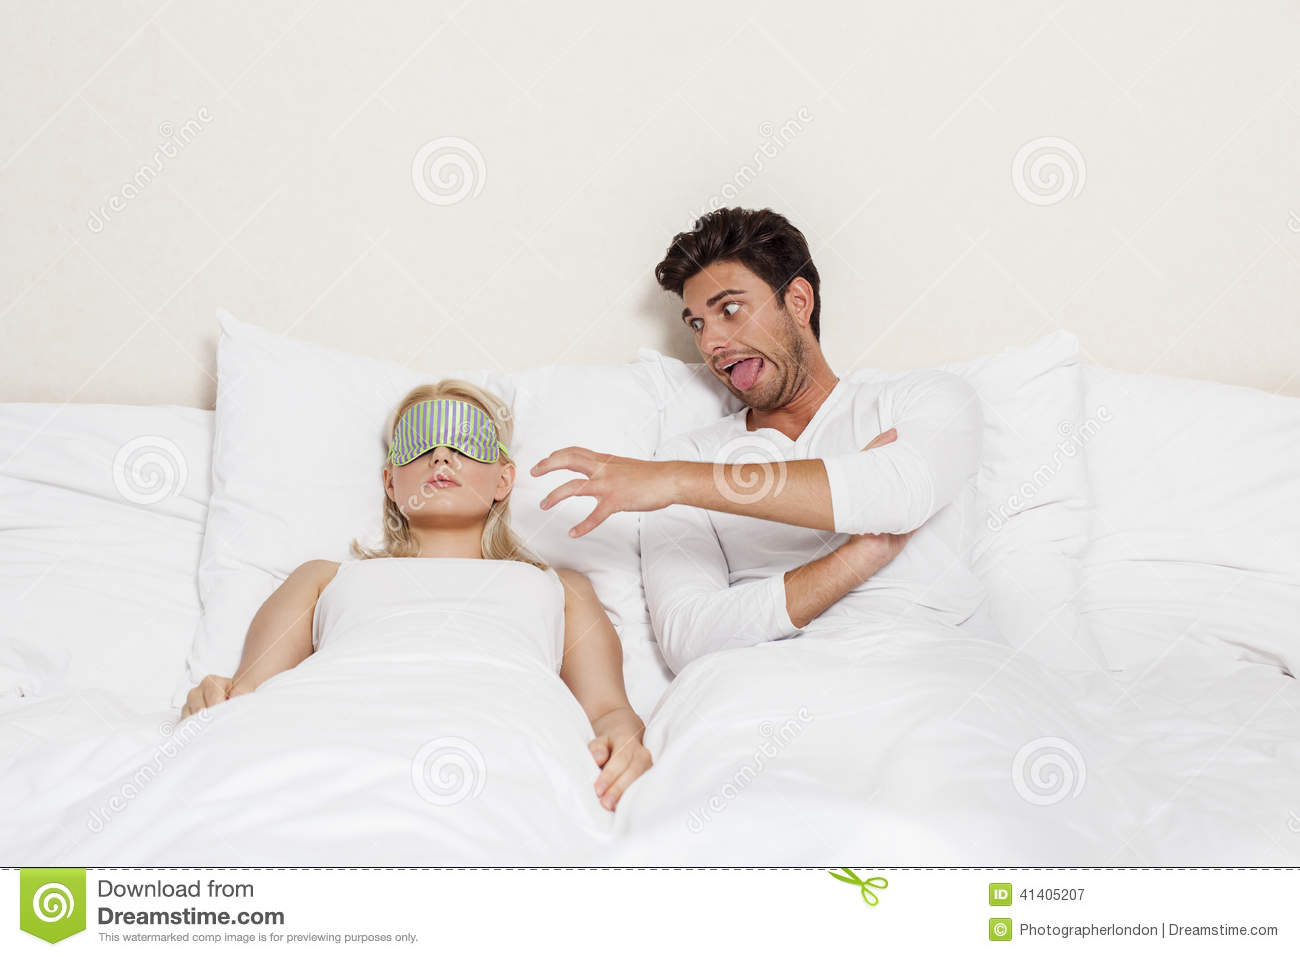 How to tease a guy in bed